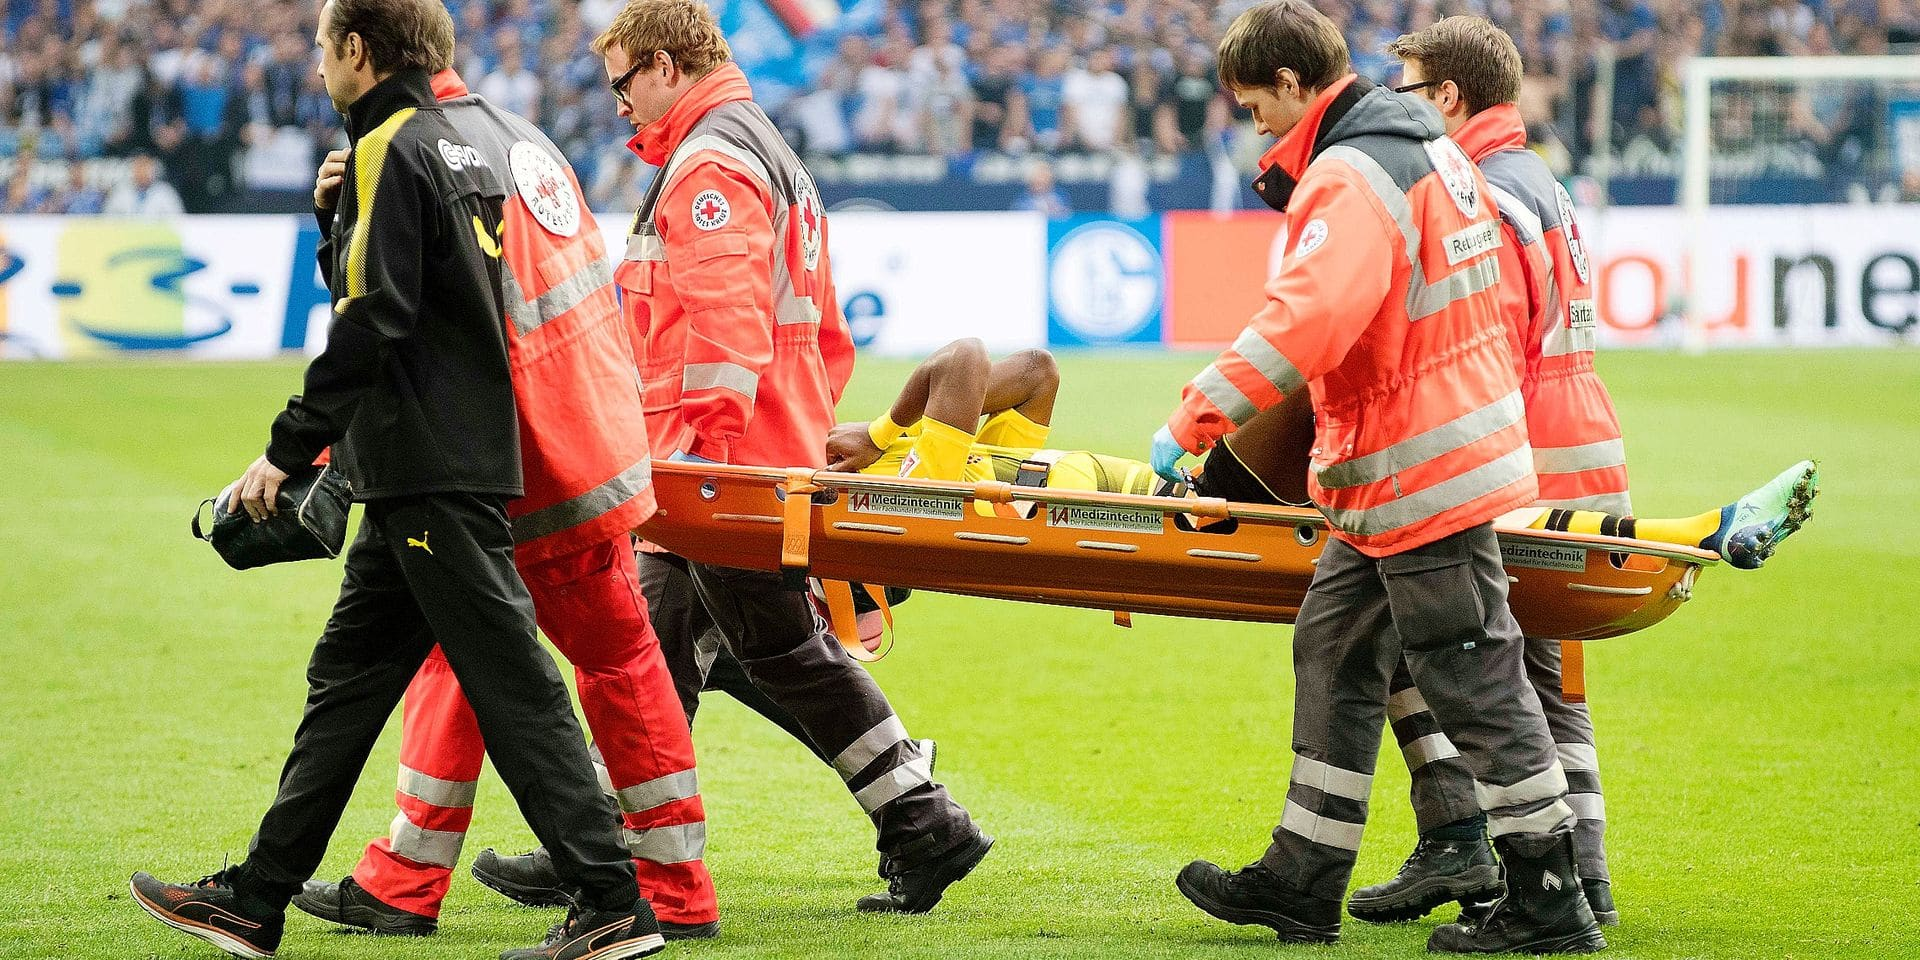 Michy BATSHUAYI (DO) is wounded, injury, Soccer 1. Bundesliga, 30. matchday, FC Schalke 04 (GE) - Borussia Dortmund (DO), on 04/15/2018 in Gelsenkirchen / Germany. | usage worldwide Reporters / DPA